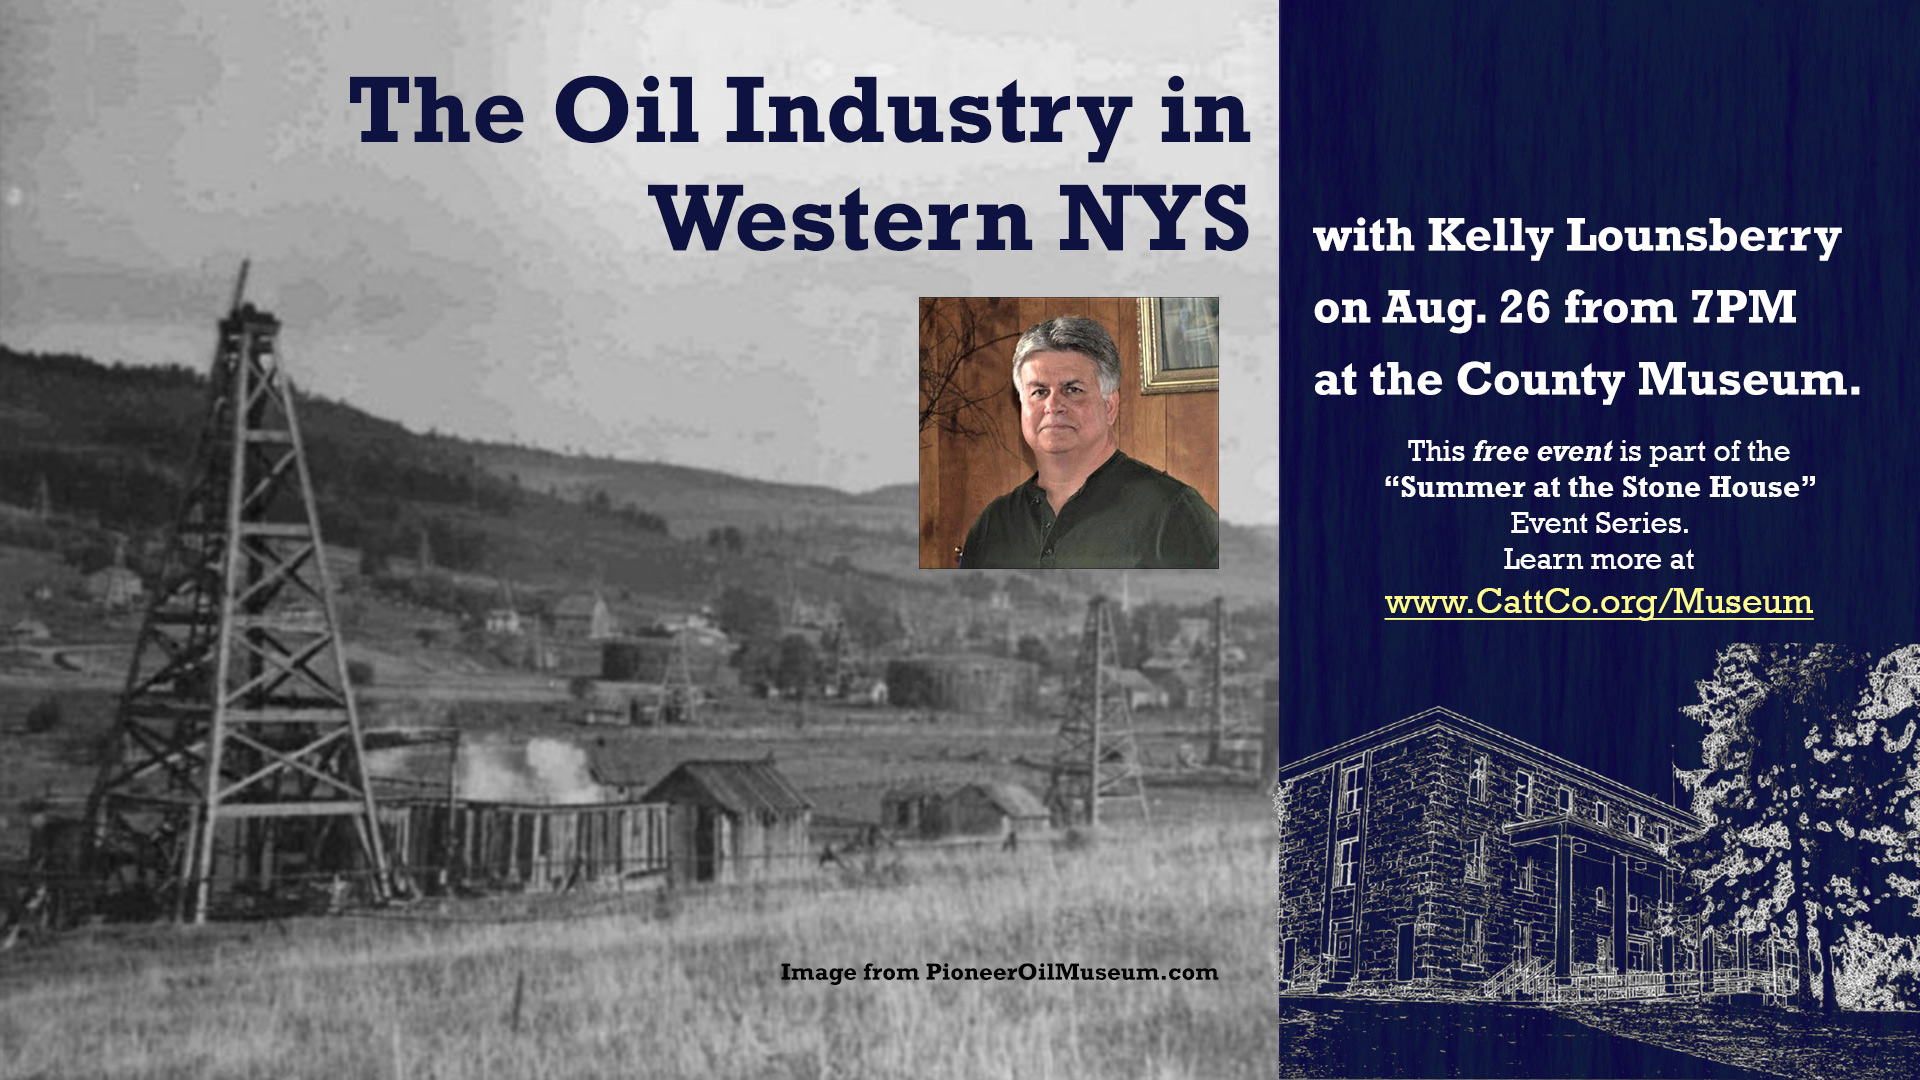 The Oil Industry in Western NYS presented by Kelly Lounsberry on Aug. 26 from 7PM at the County Museum